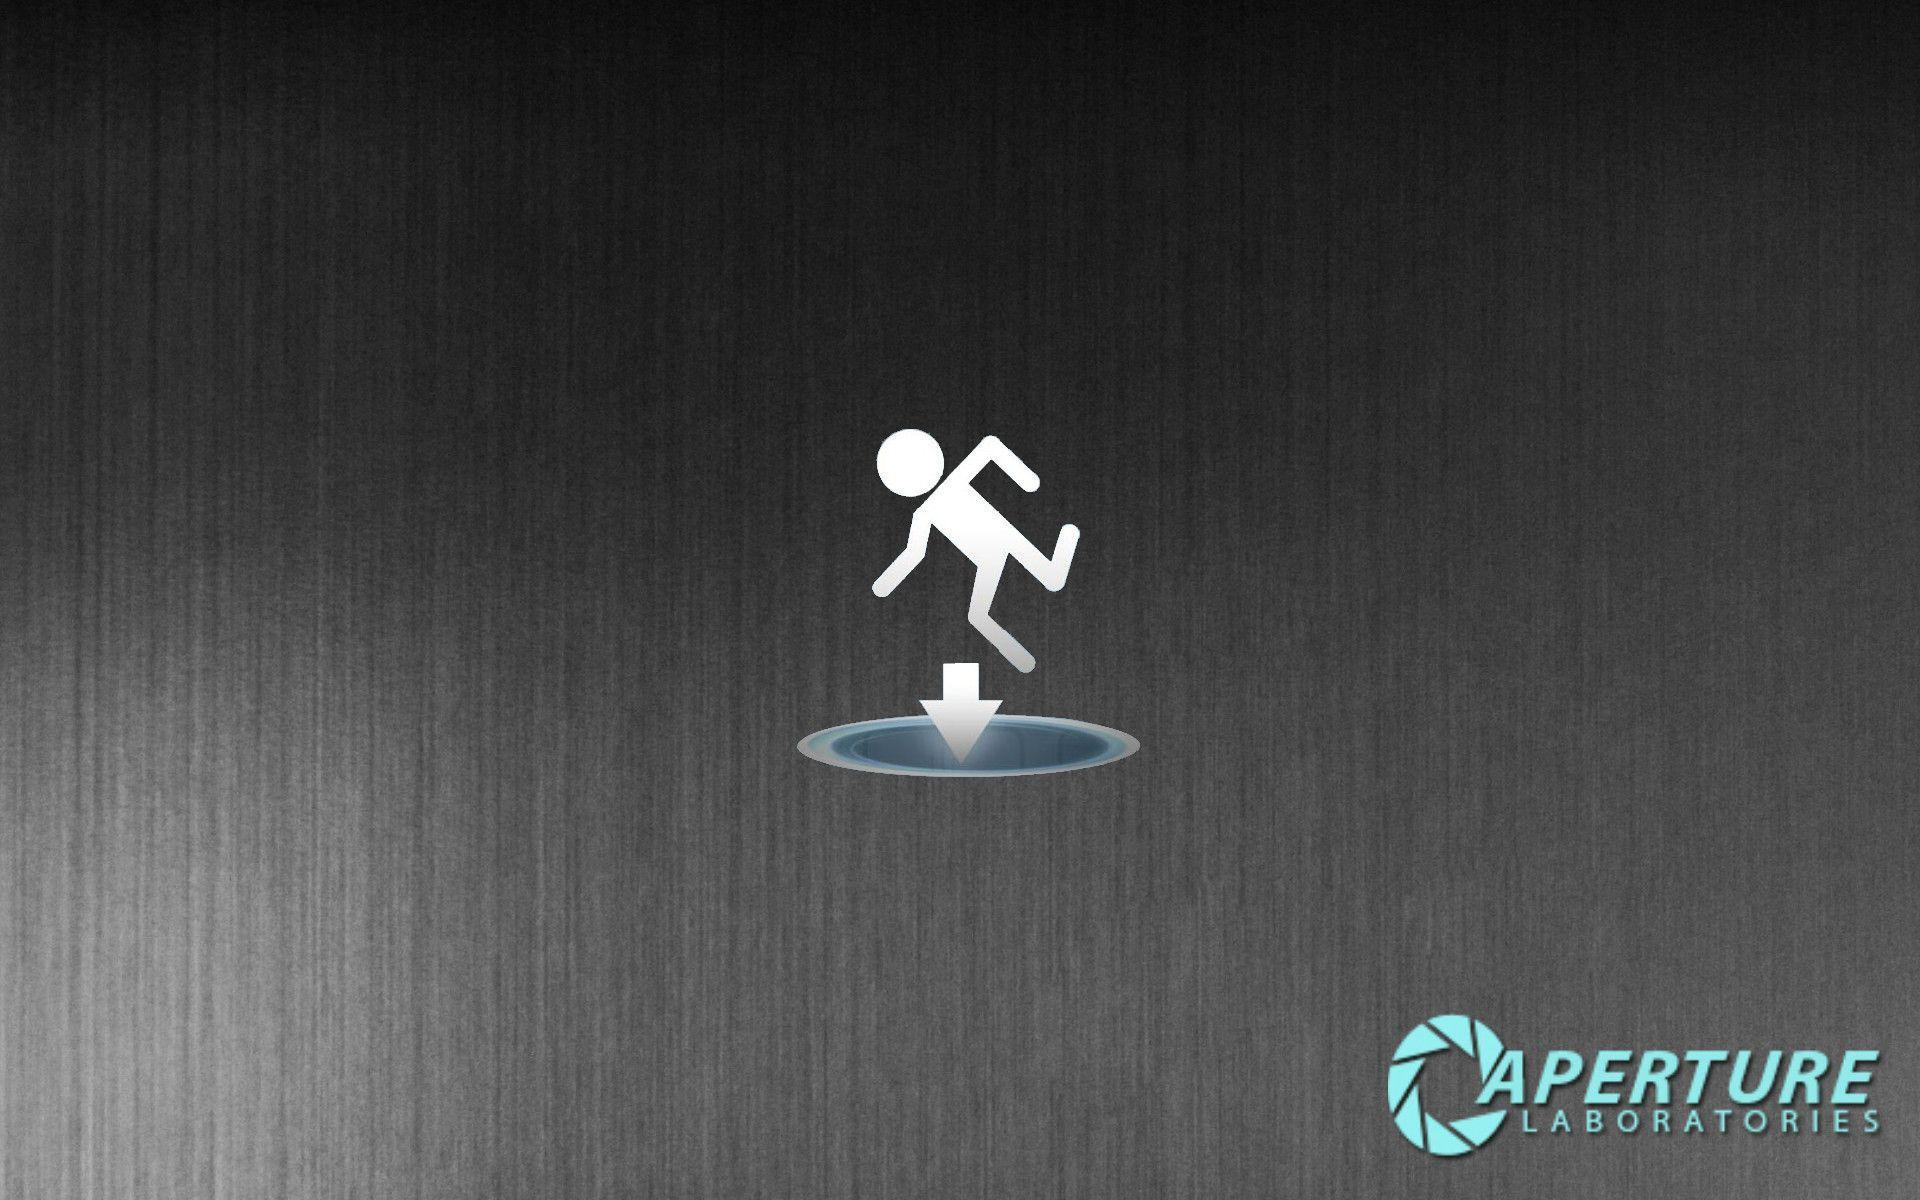 aperture science wallpapers wallpaper cave